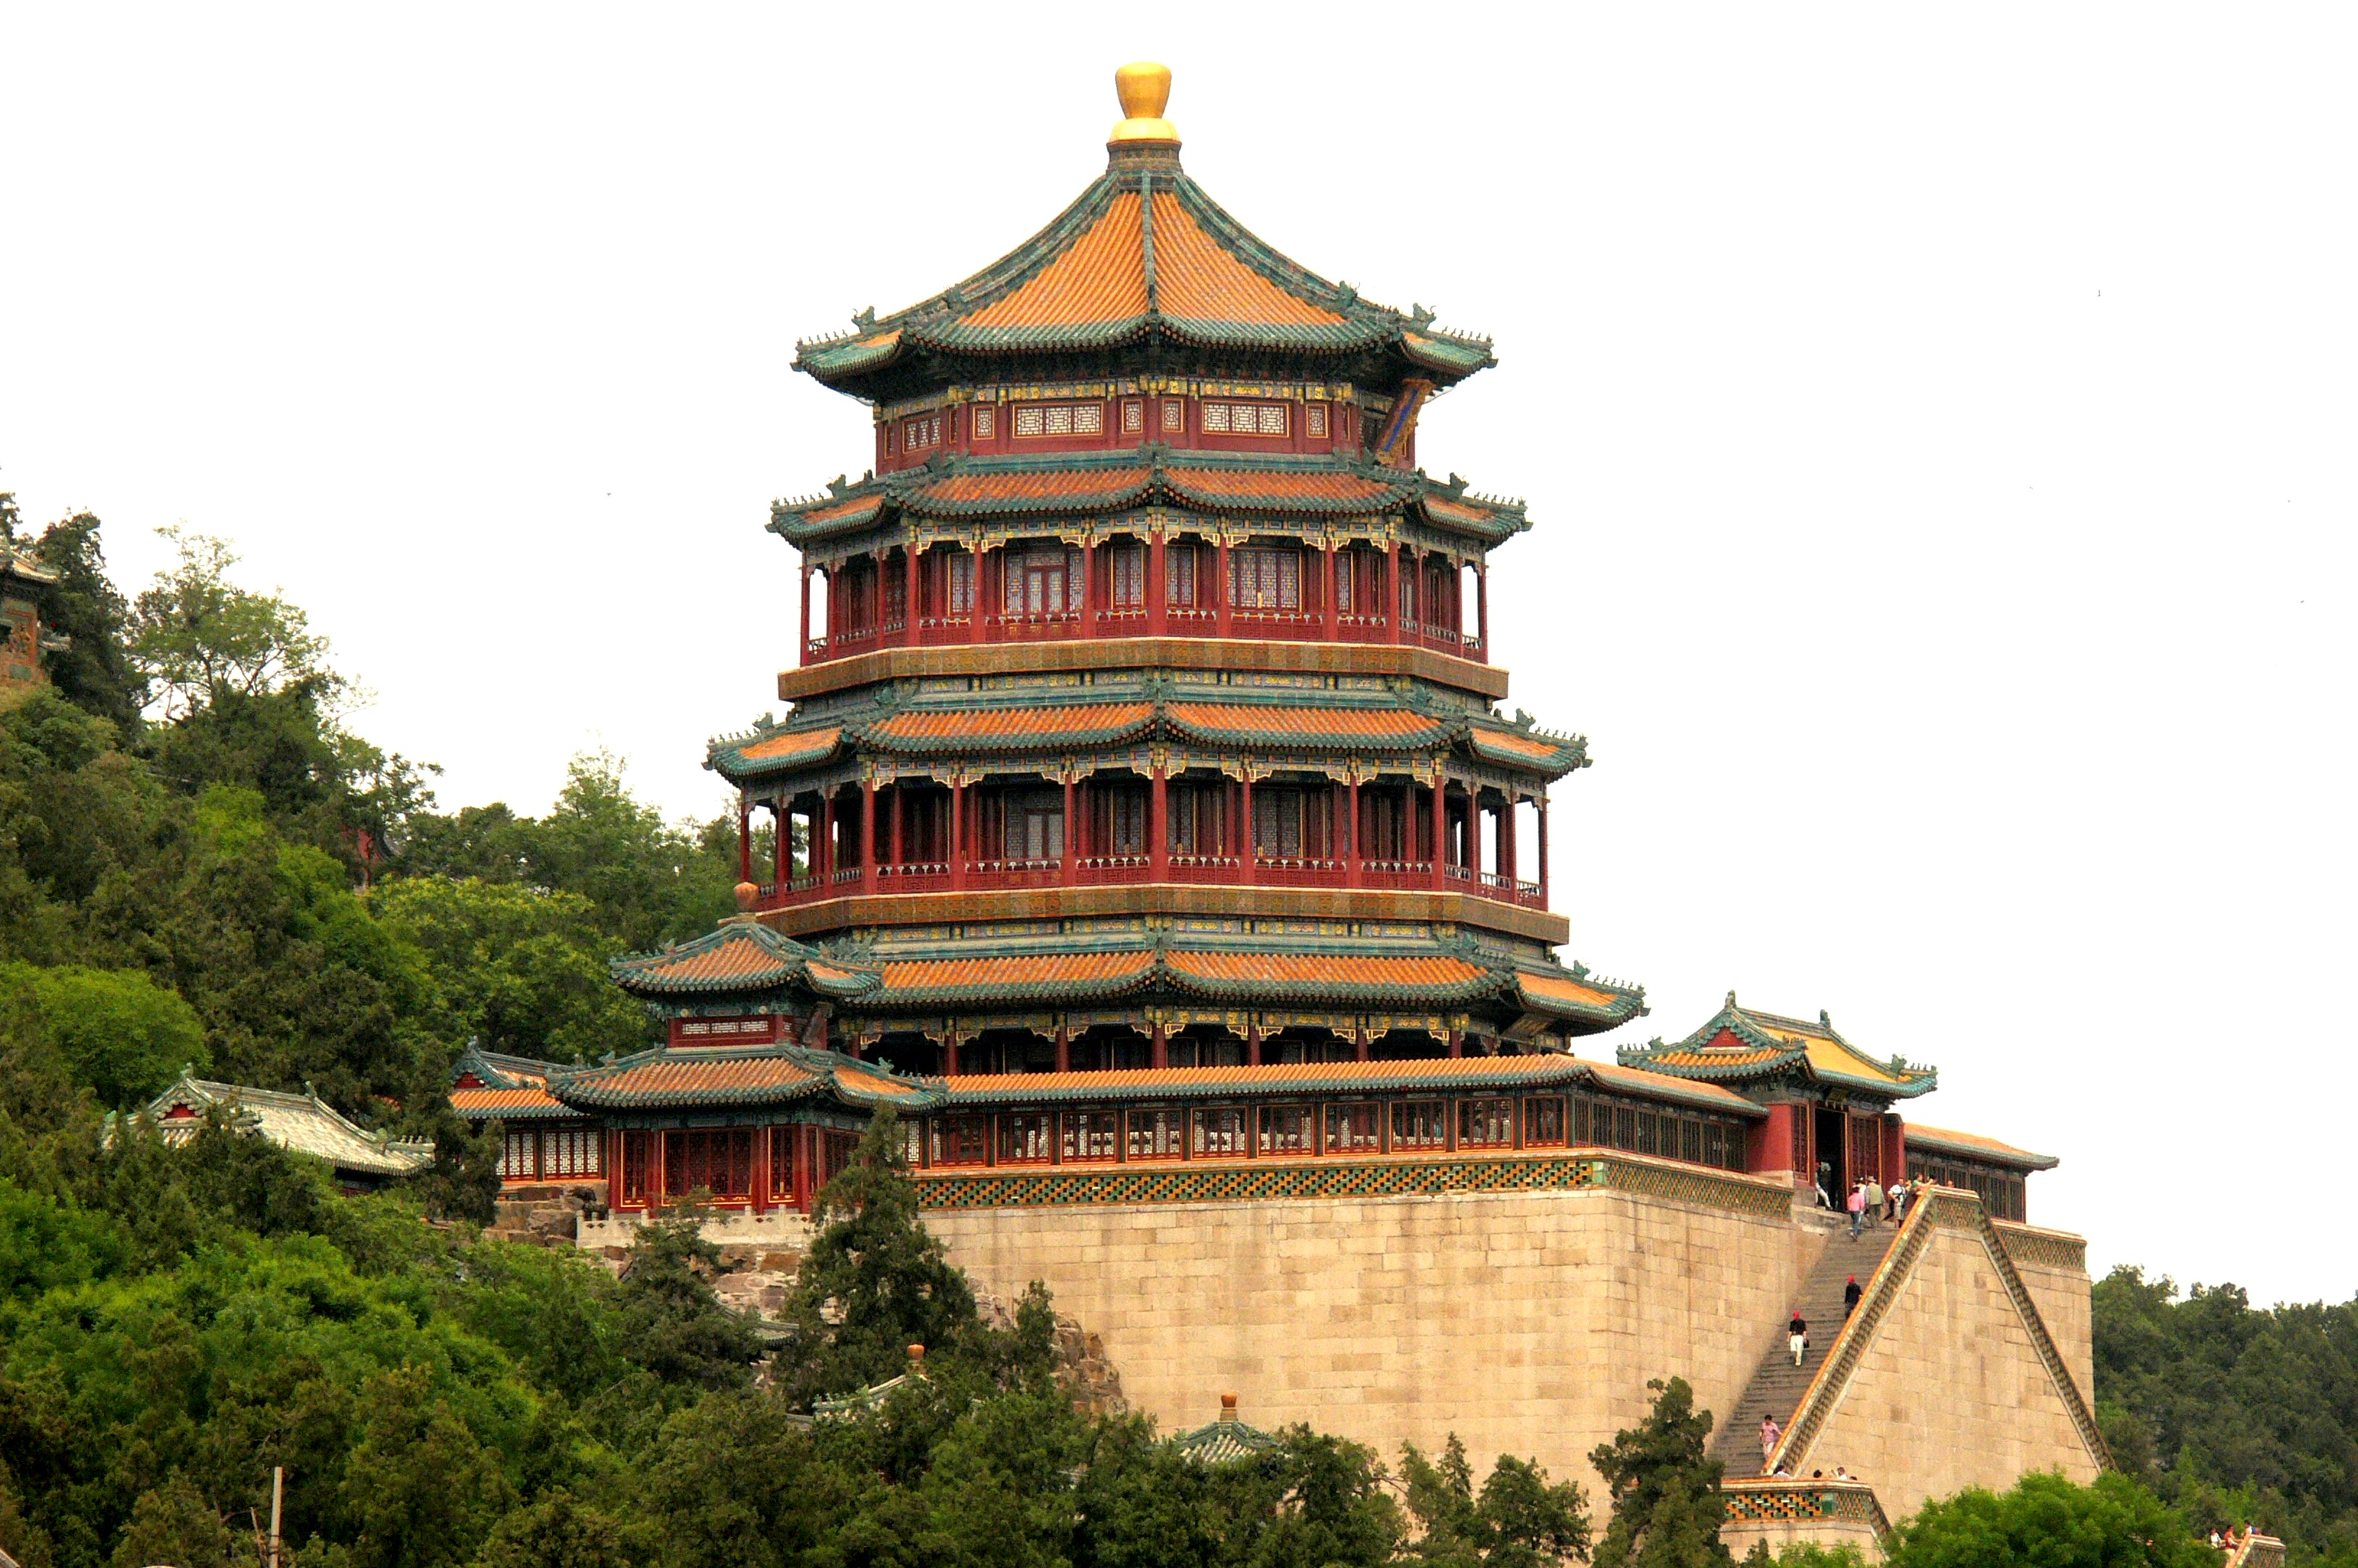 Summer Palace Tower of the Fragrance of the Budda